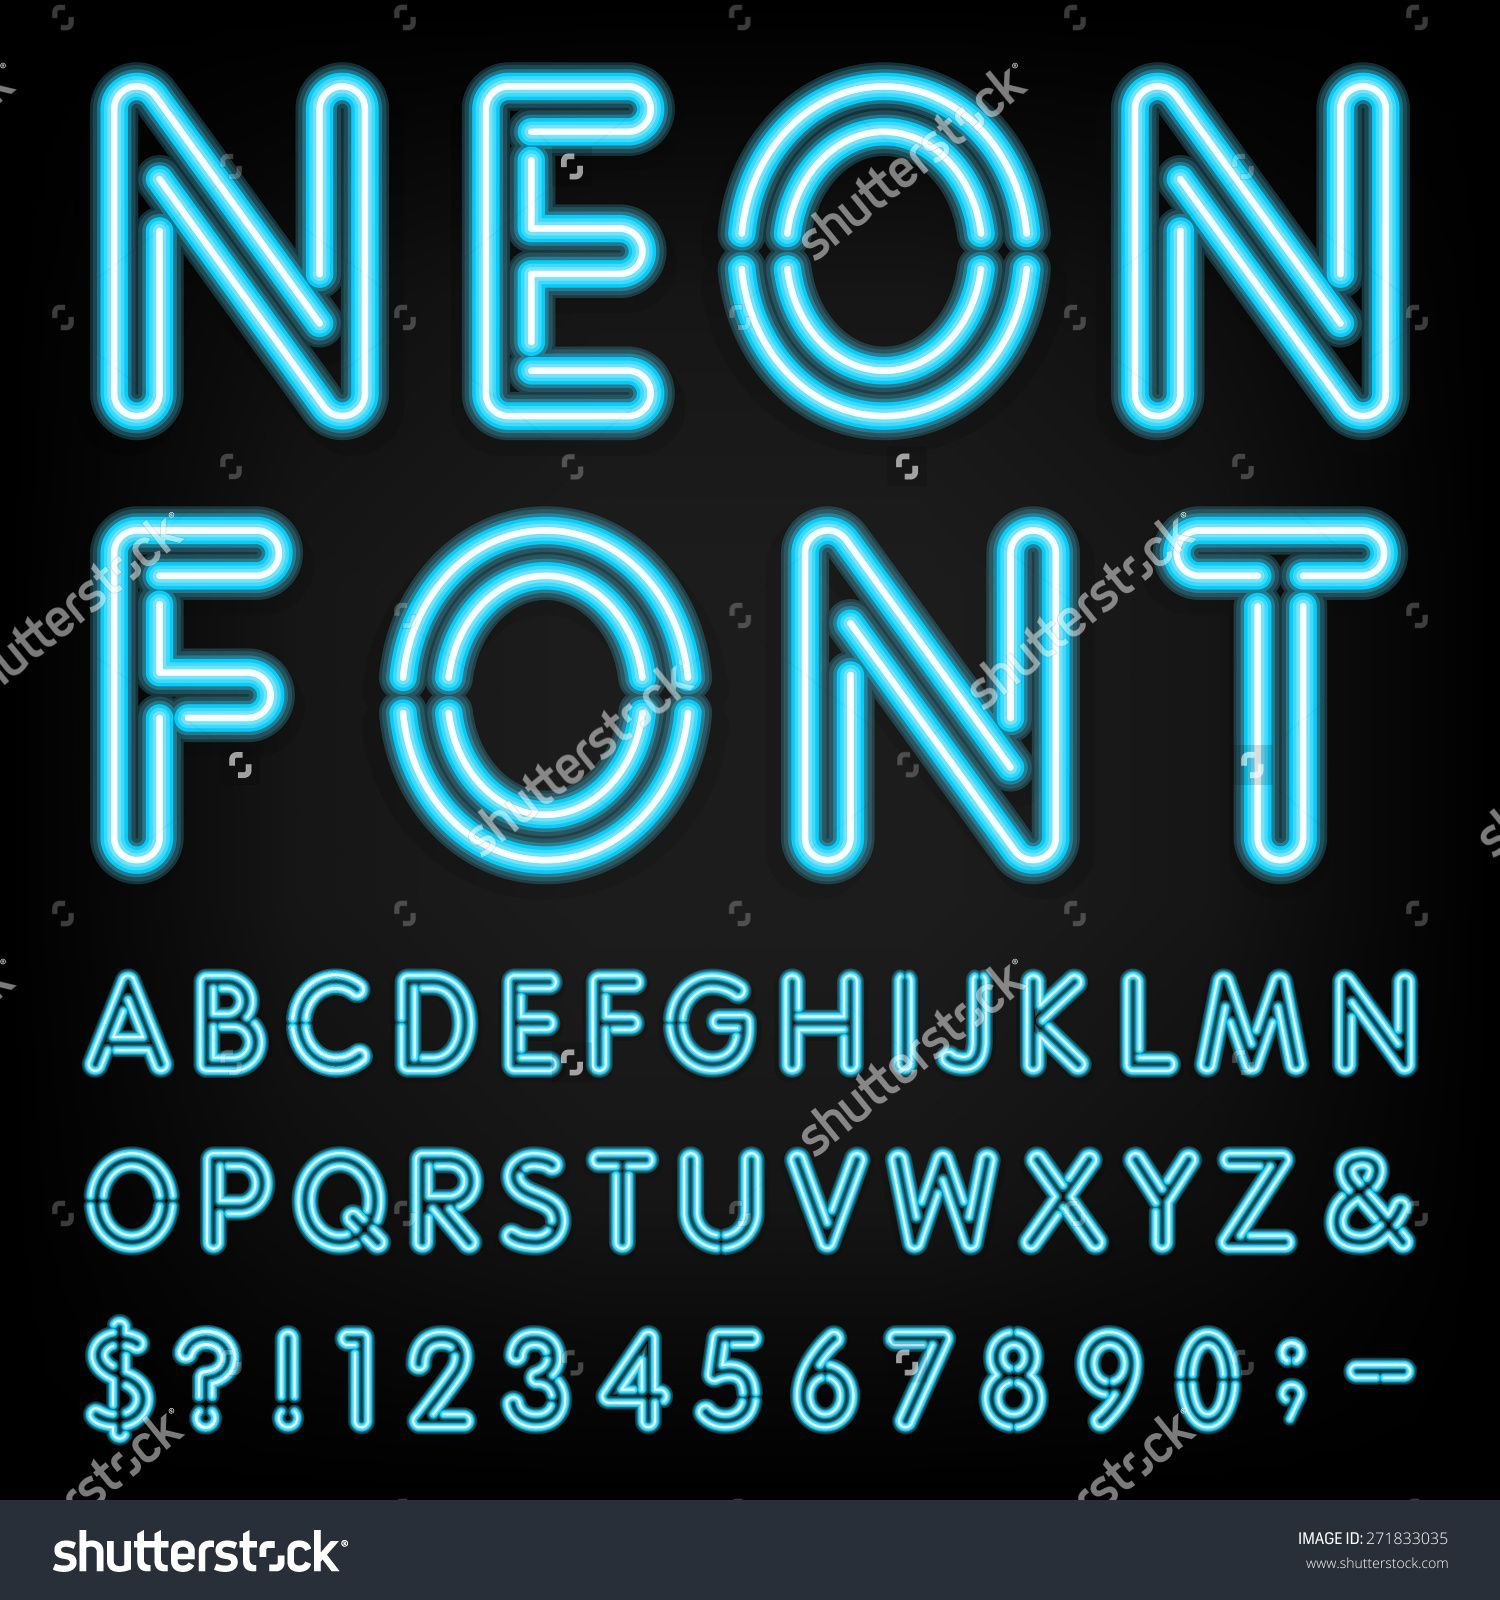 Neon font generator shutterstock chalkboard neon fonts type letters numbers and punctuation marks neon tube letters on dark background buy this stock vector on shutterstock find other images biocorpaavc Image collections